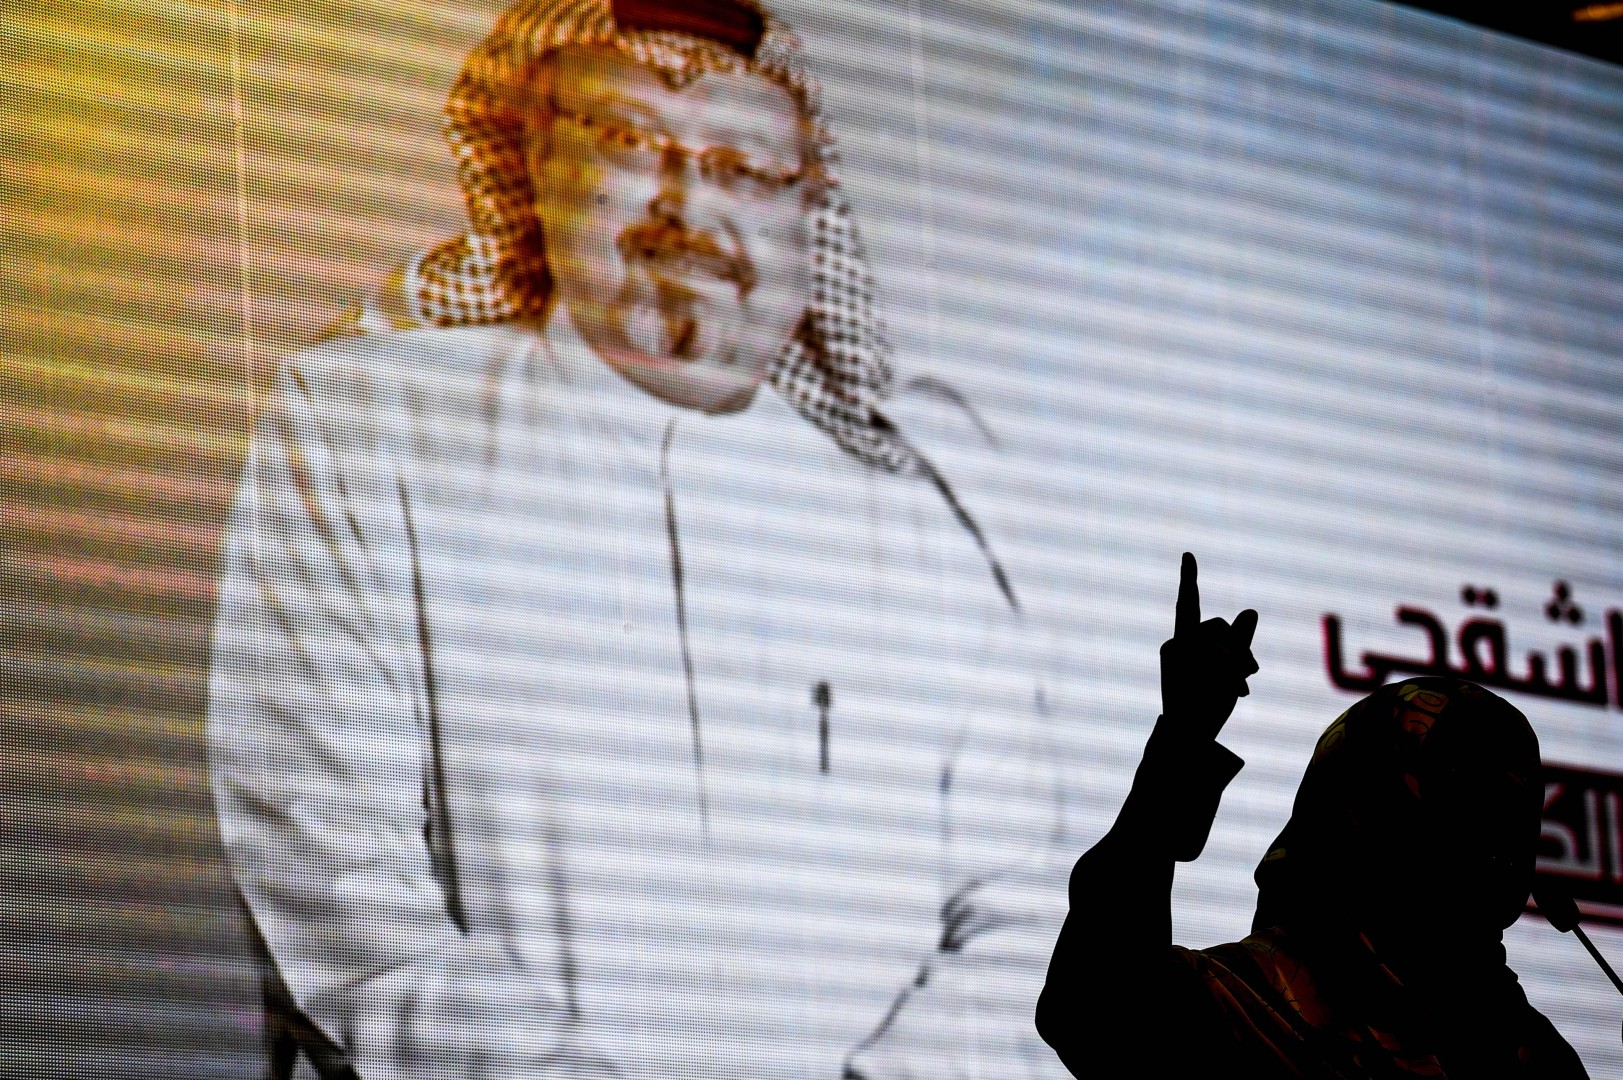 Nobel Peace Prize laureate Yemeni Tawakkol Karman stands in front of a digital image of Jamal Khashoggi as she speaks during a commemoration event of Khashoggi's supporters on November 11, 2018 in Istanbul. - US Secretary of State Mike Pompeo told Saudi Crown Prince Mohammed bin Salman on November 11, 2018 that the US will hold accountable all involved in killing a dissident Saudi journalist. (Photo by OZAN KOSE / AFP)